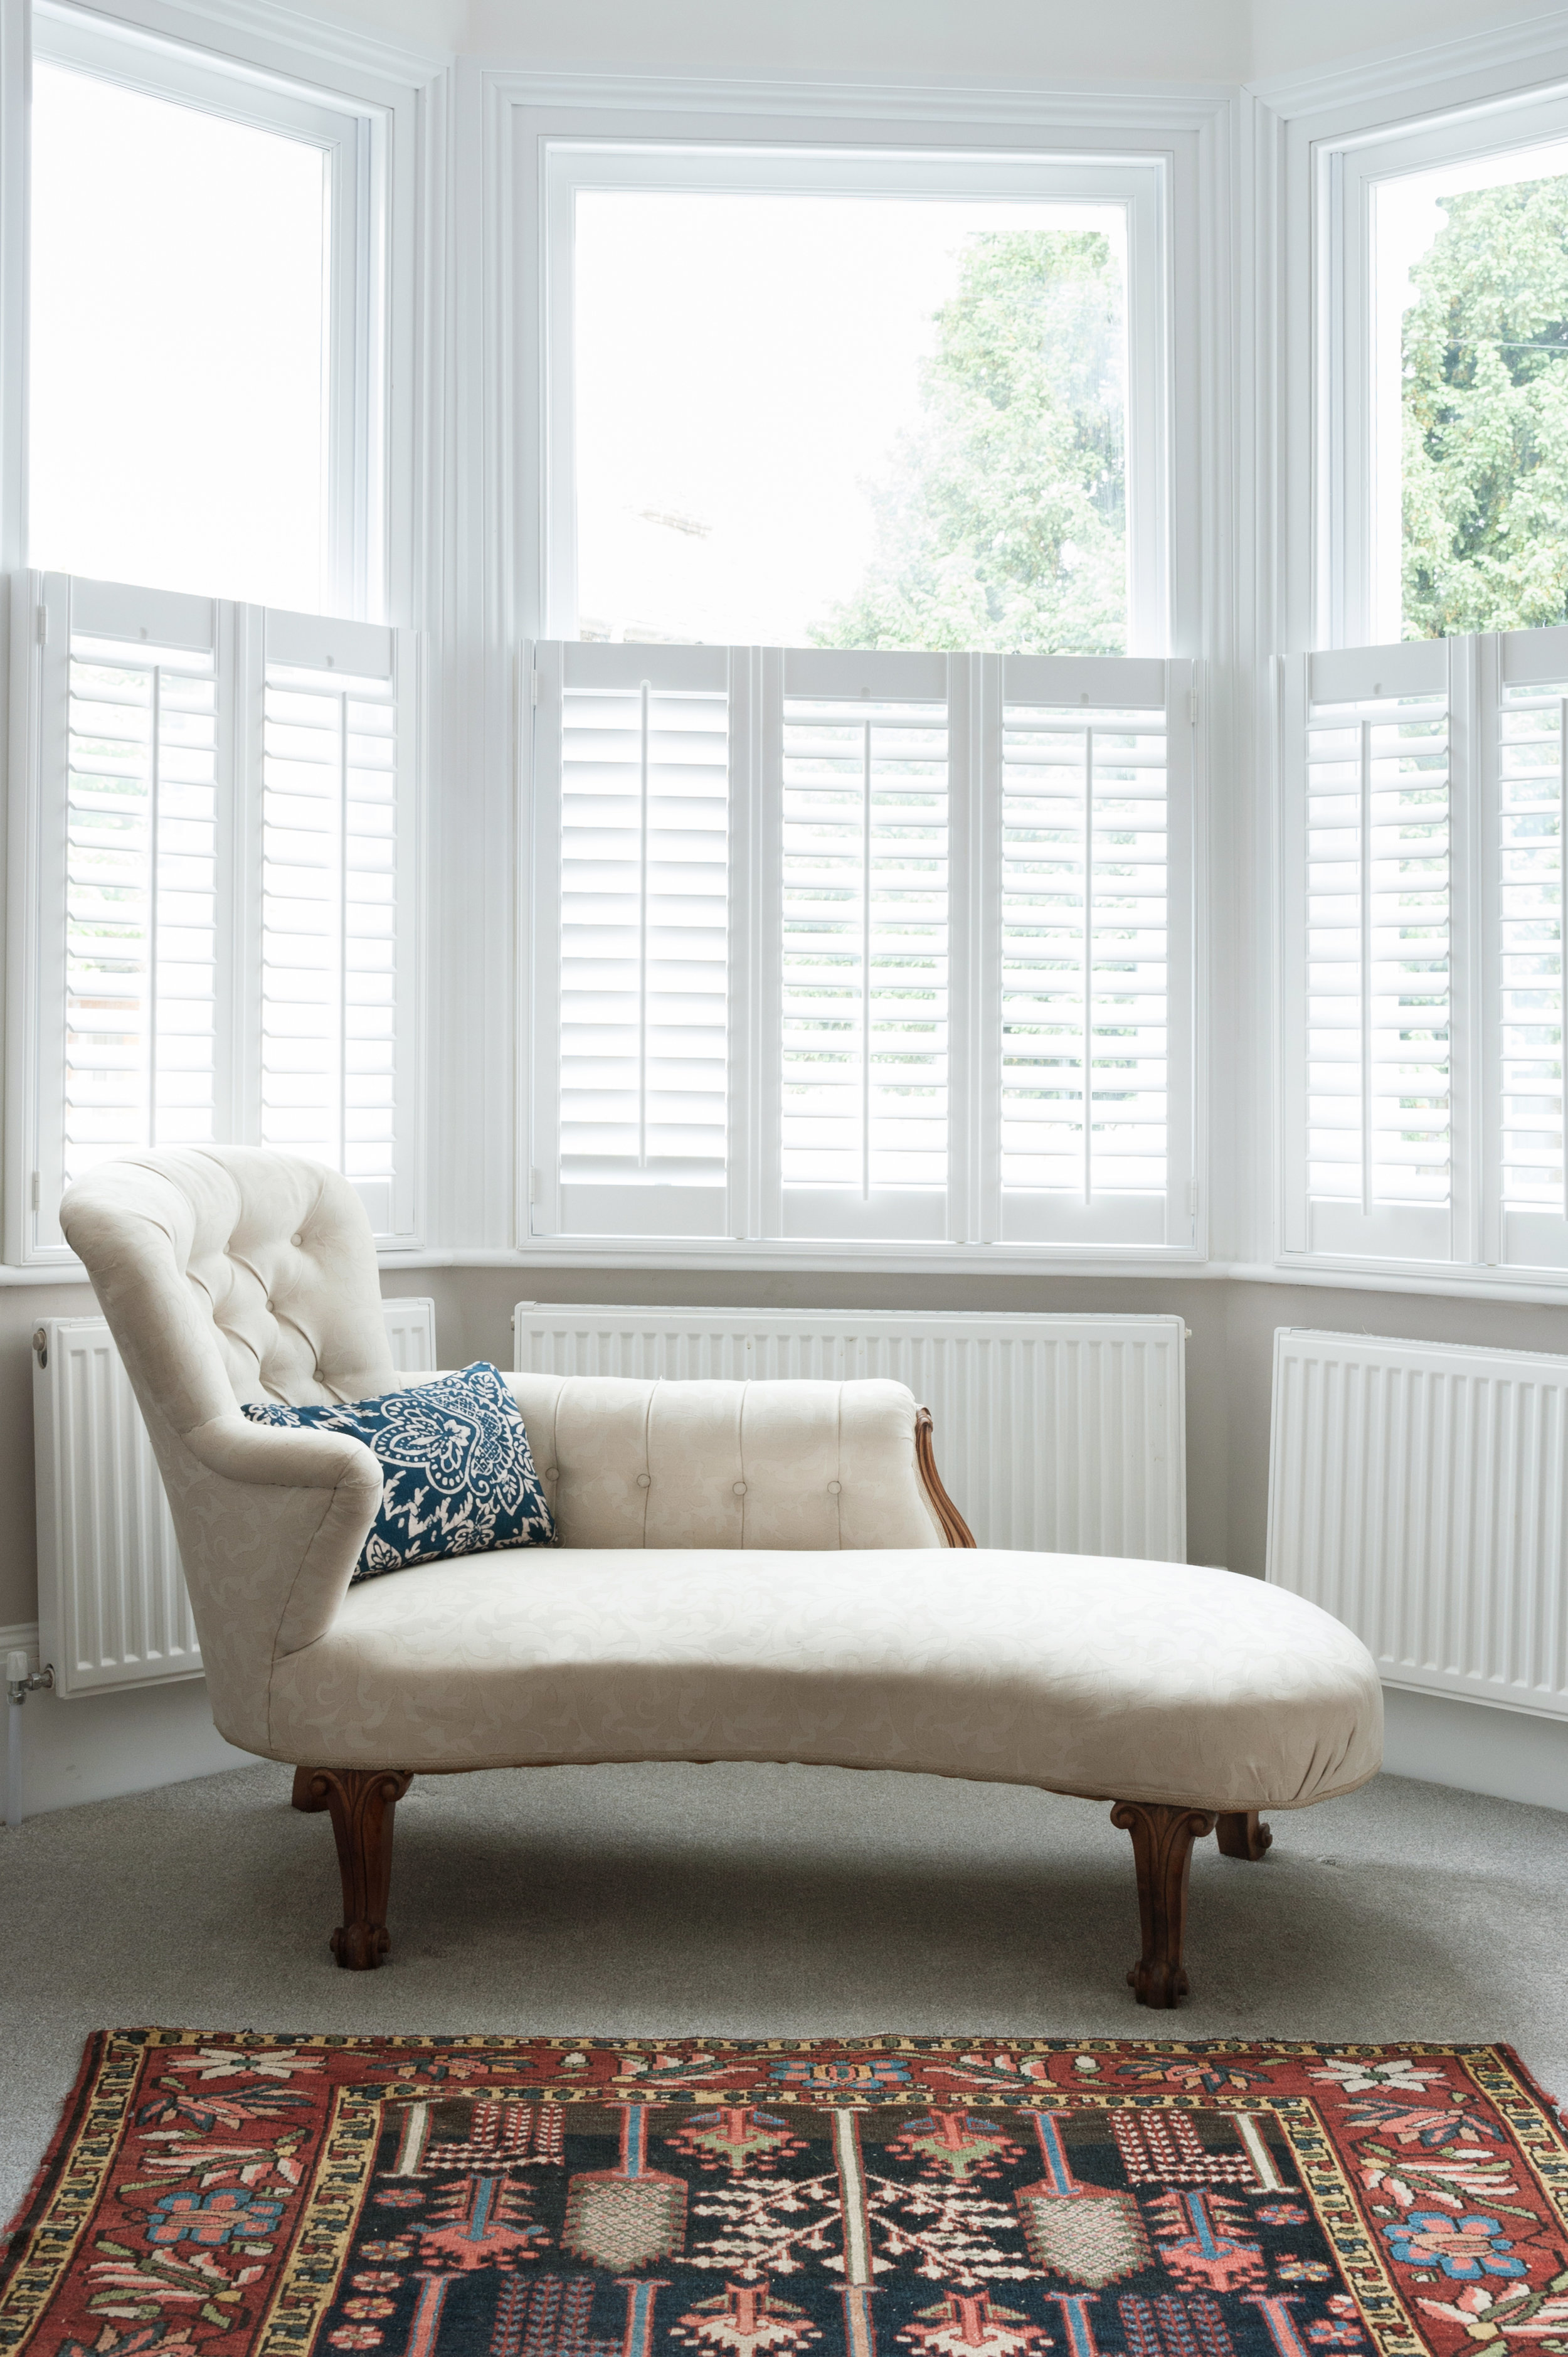 Kingston chaise and shutters.jpg